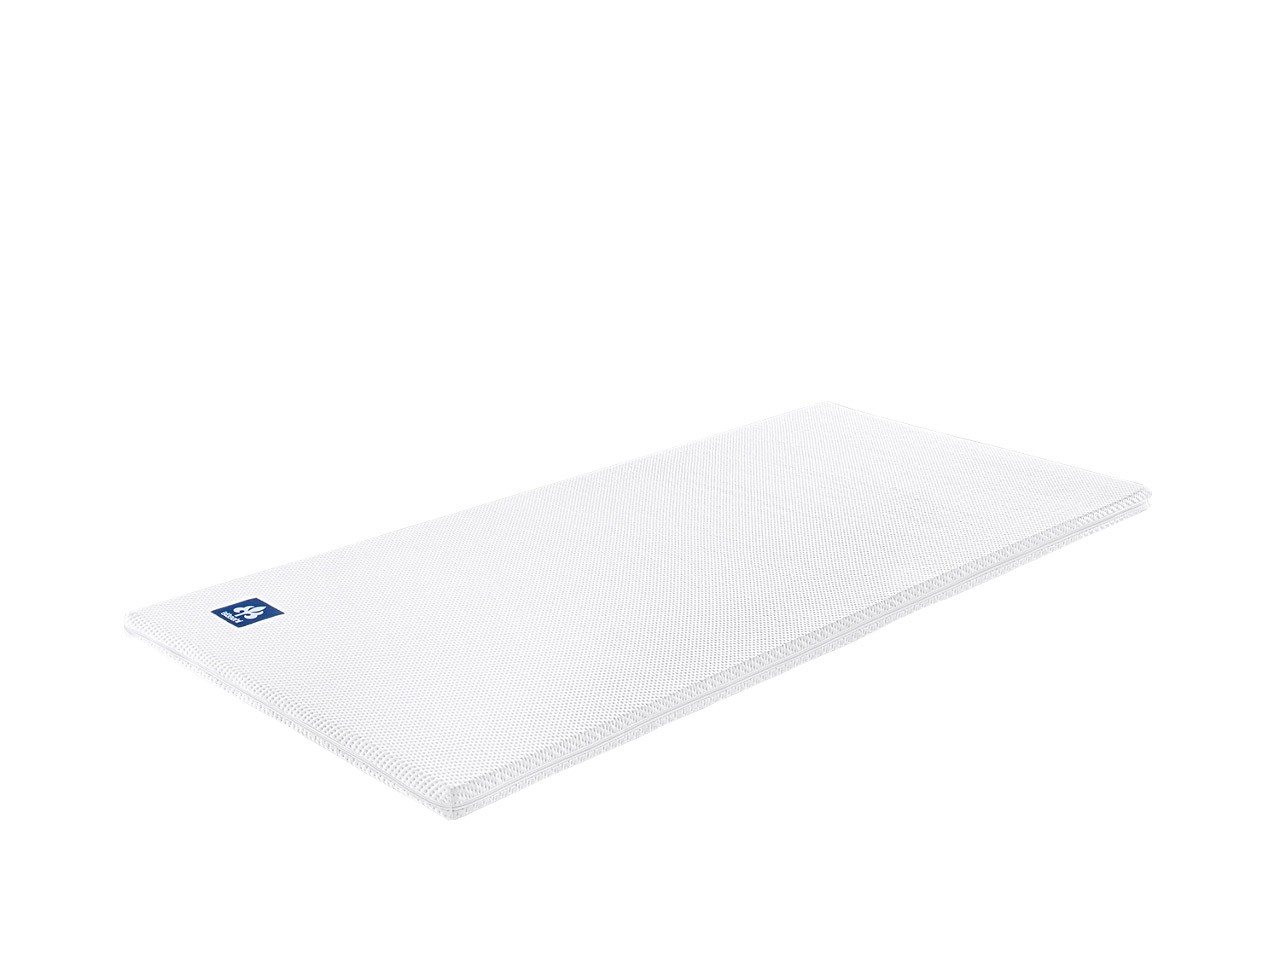 Kaltschaum Topper 140x200 Badenia Irisette Kaltschaum Topper Ks